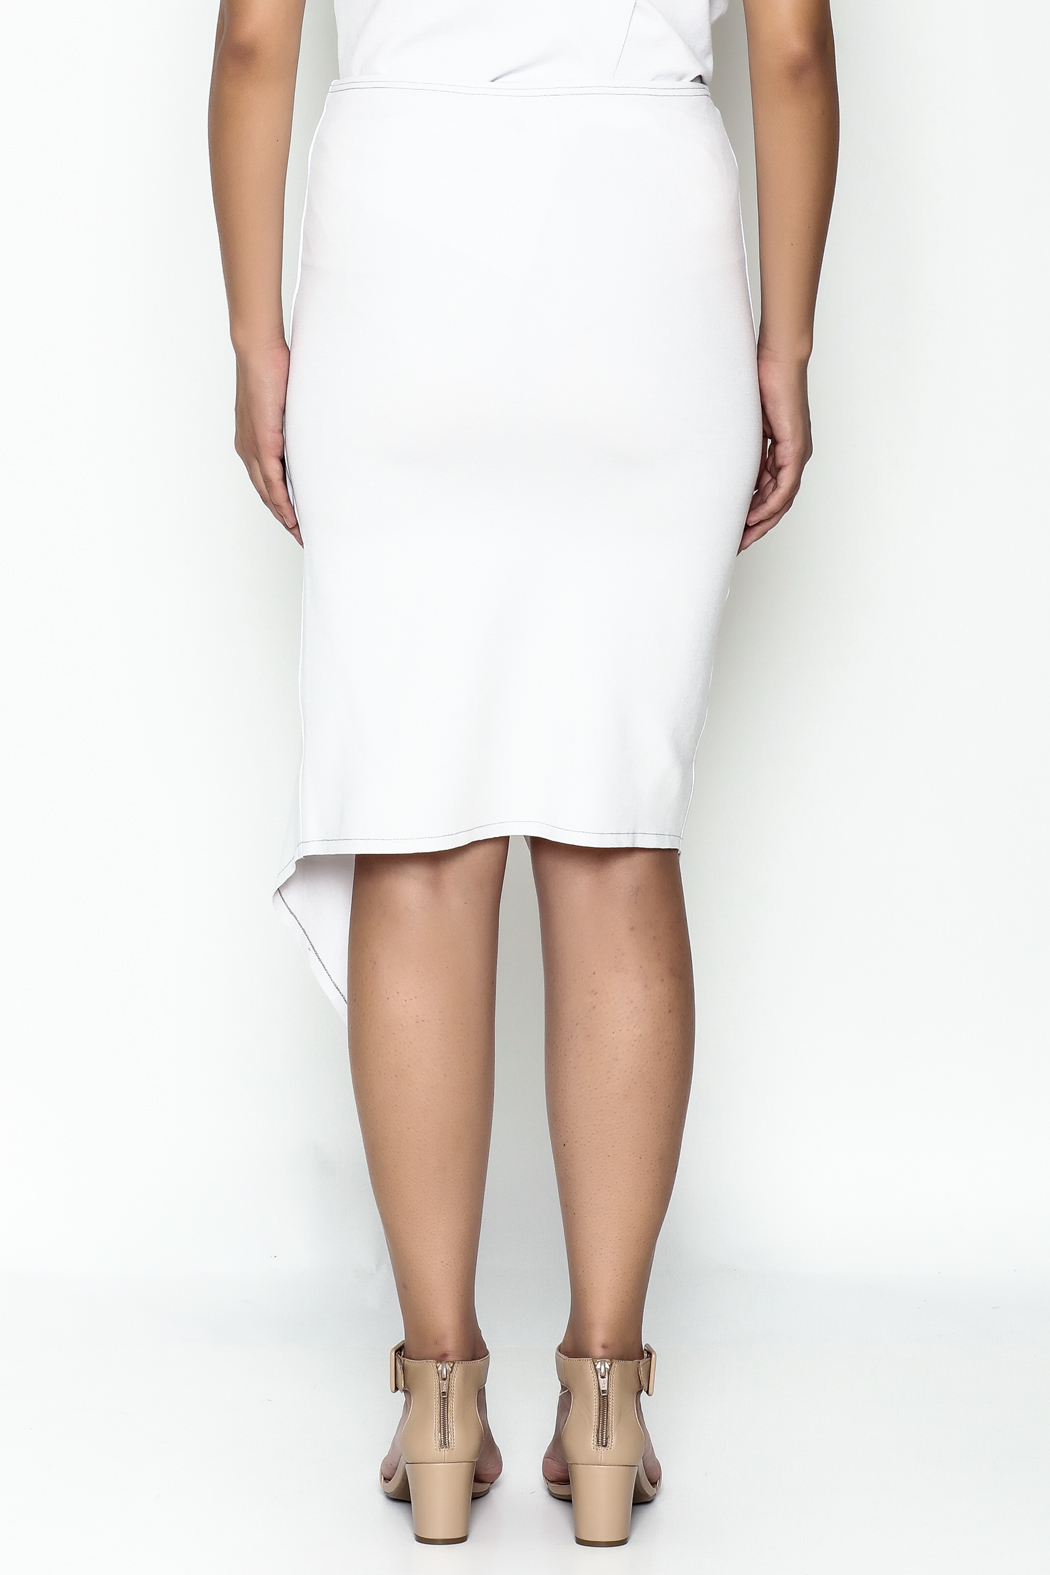 Vertex Dina Skirt - Back Cropped Image